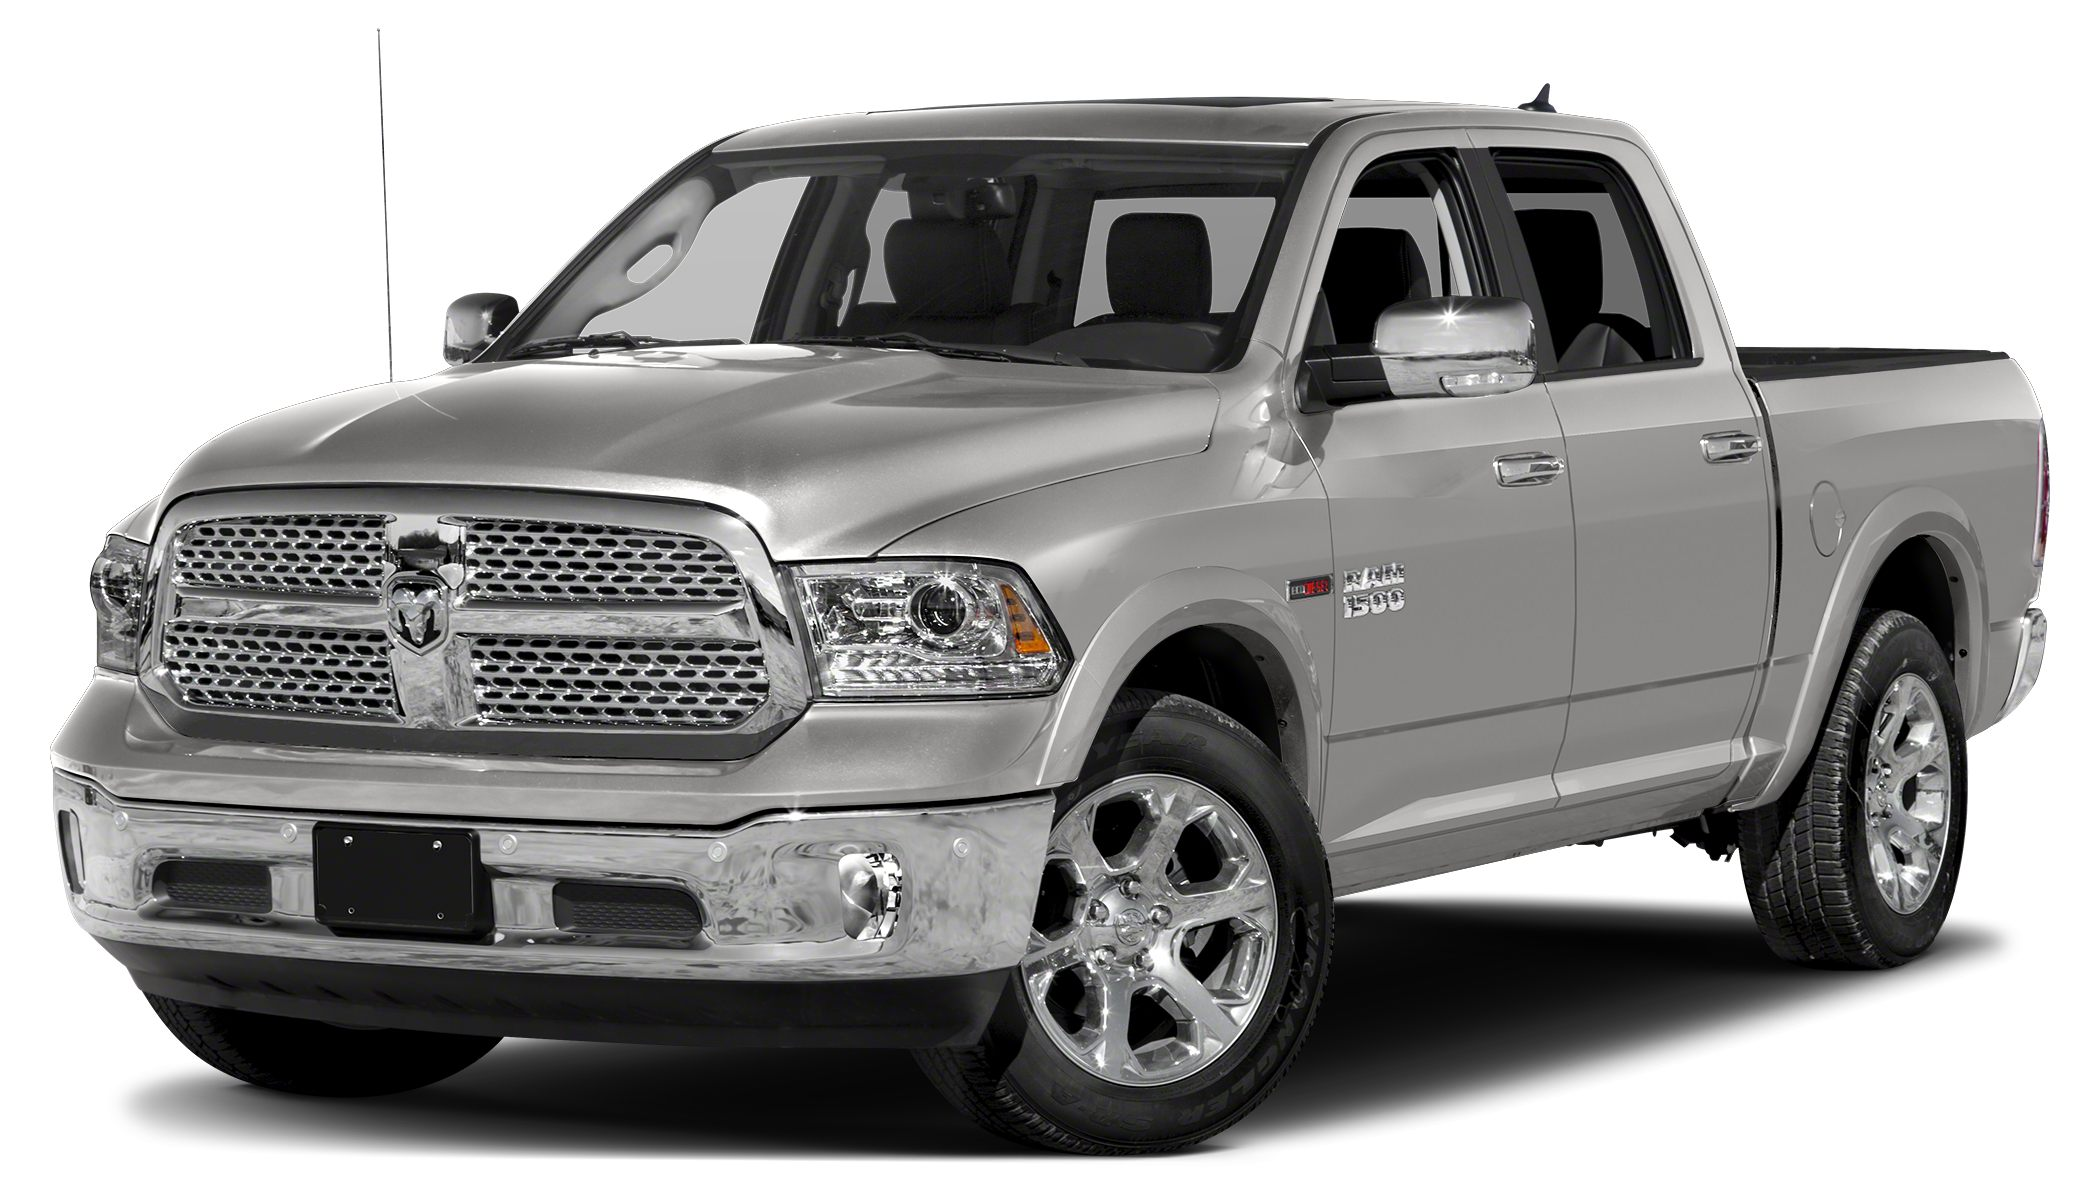 2015 RAM 1500 Laramie This is a 2015 RAM 1500 Laramie 4x4 CREW CAB with only 15K miles on it A ON